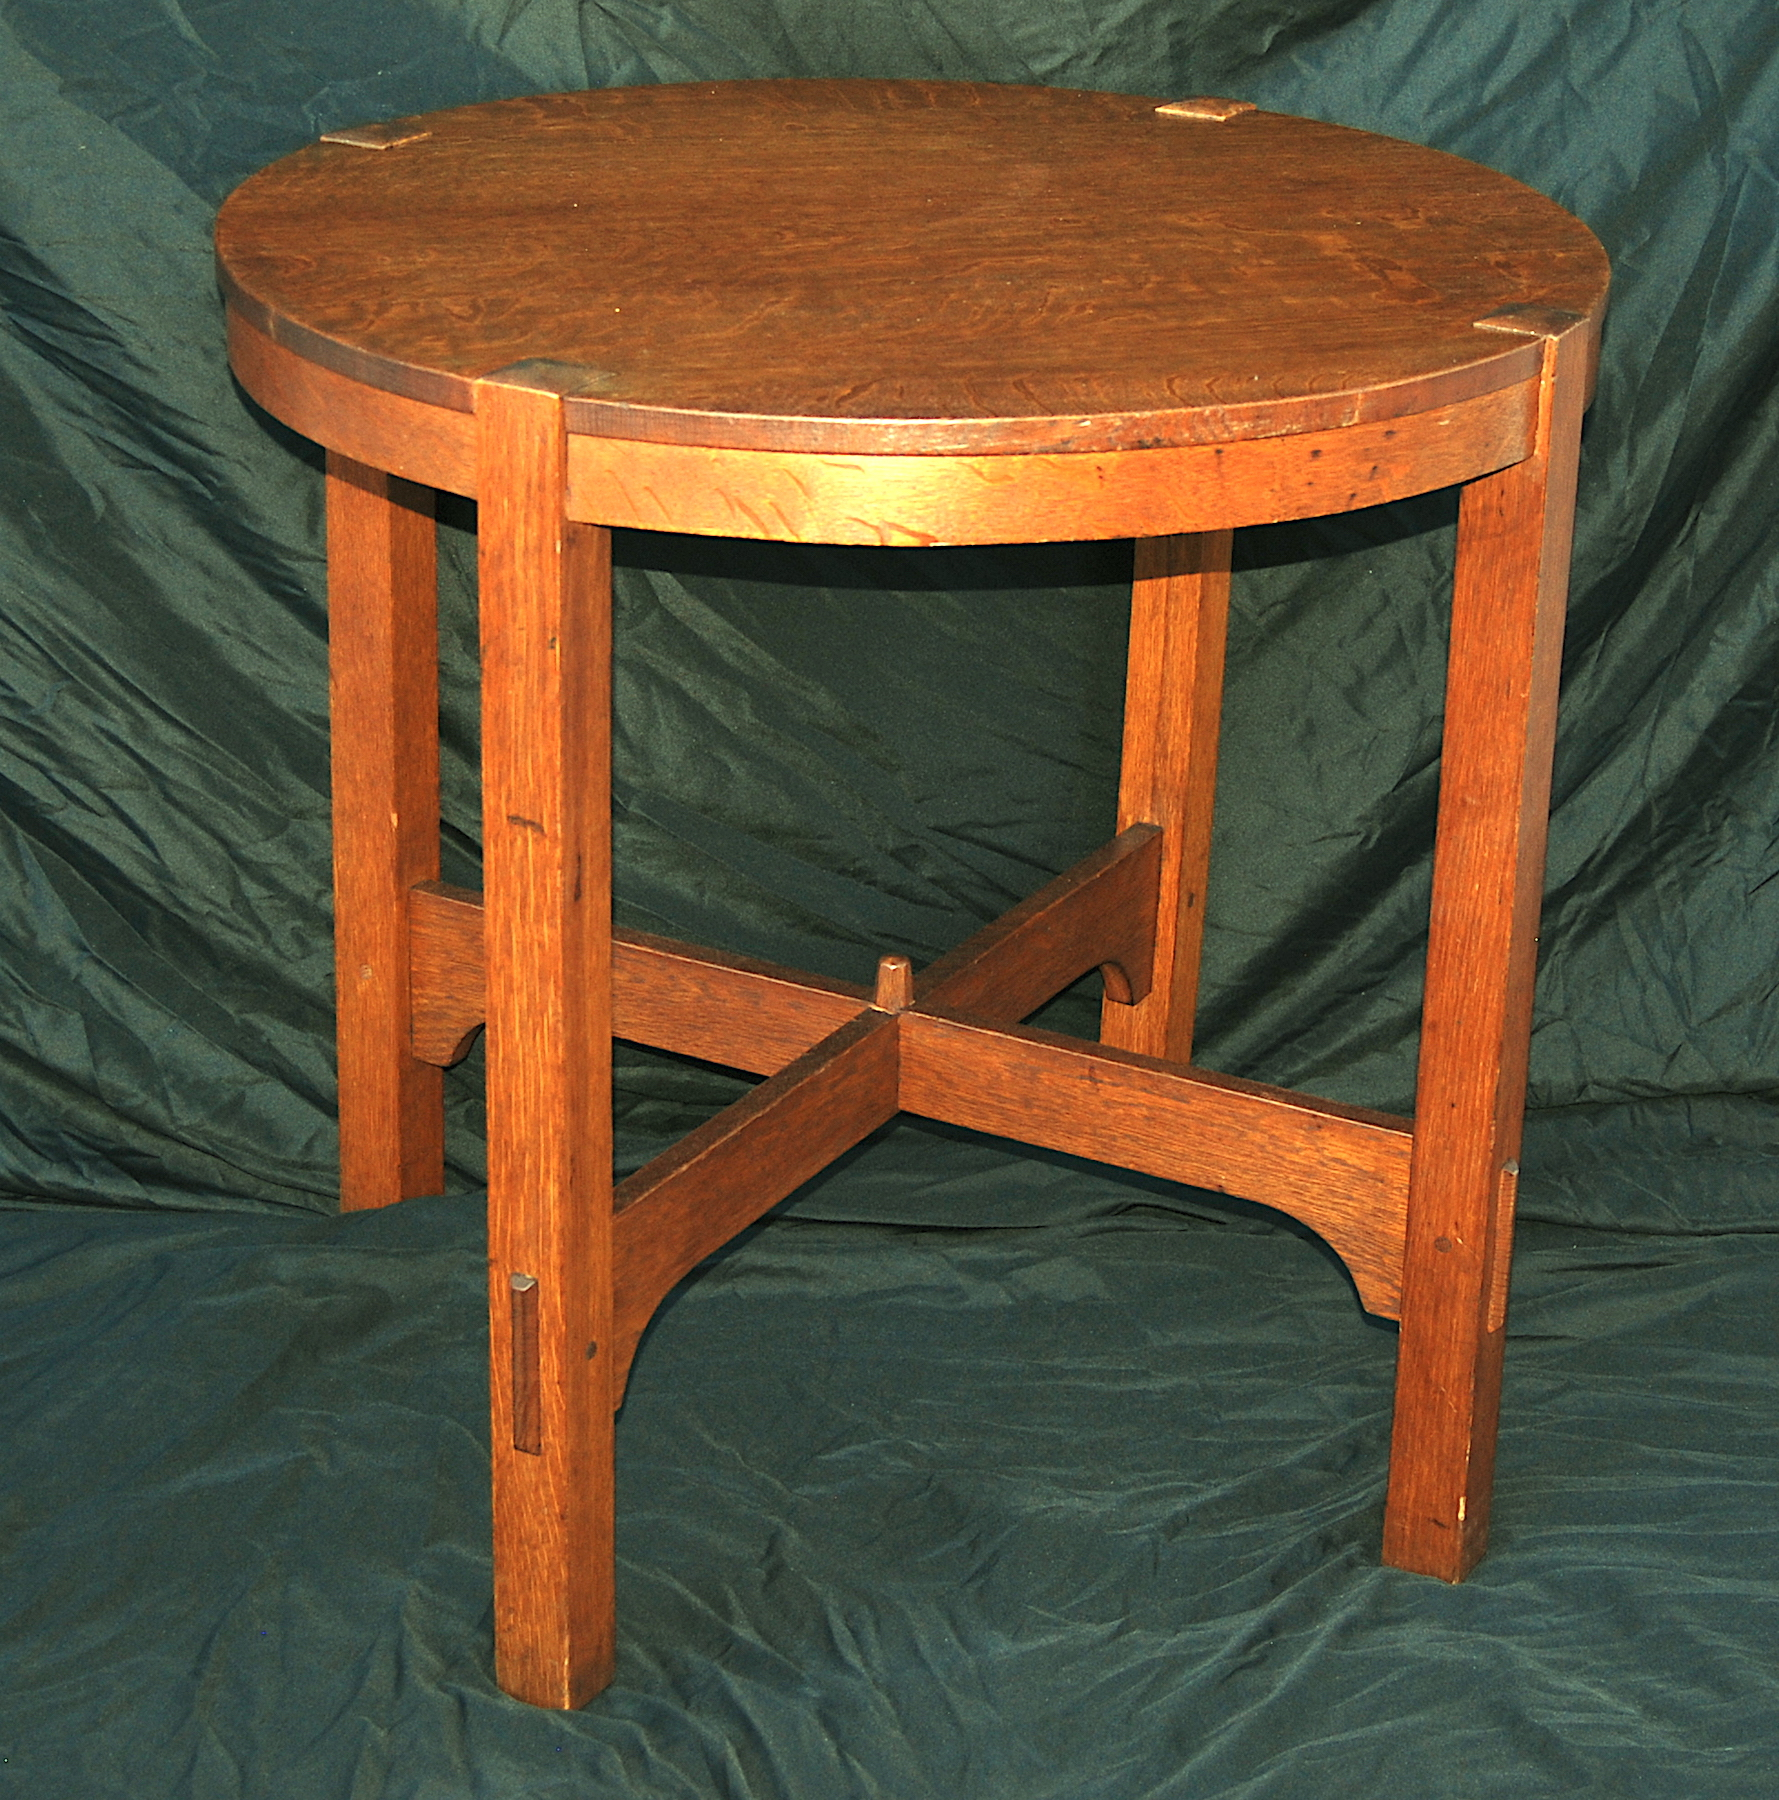 Voorhees craftsman mission oak furniture lamp tables original vintage gustav stickley lamp table aloadofball Gallery